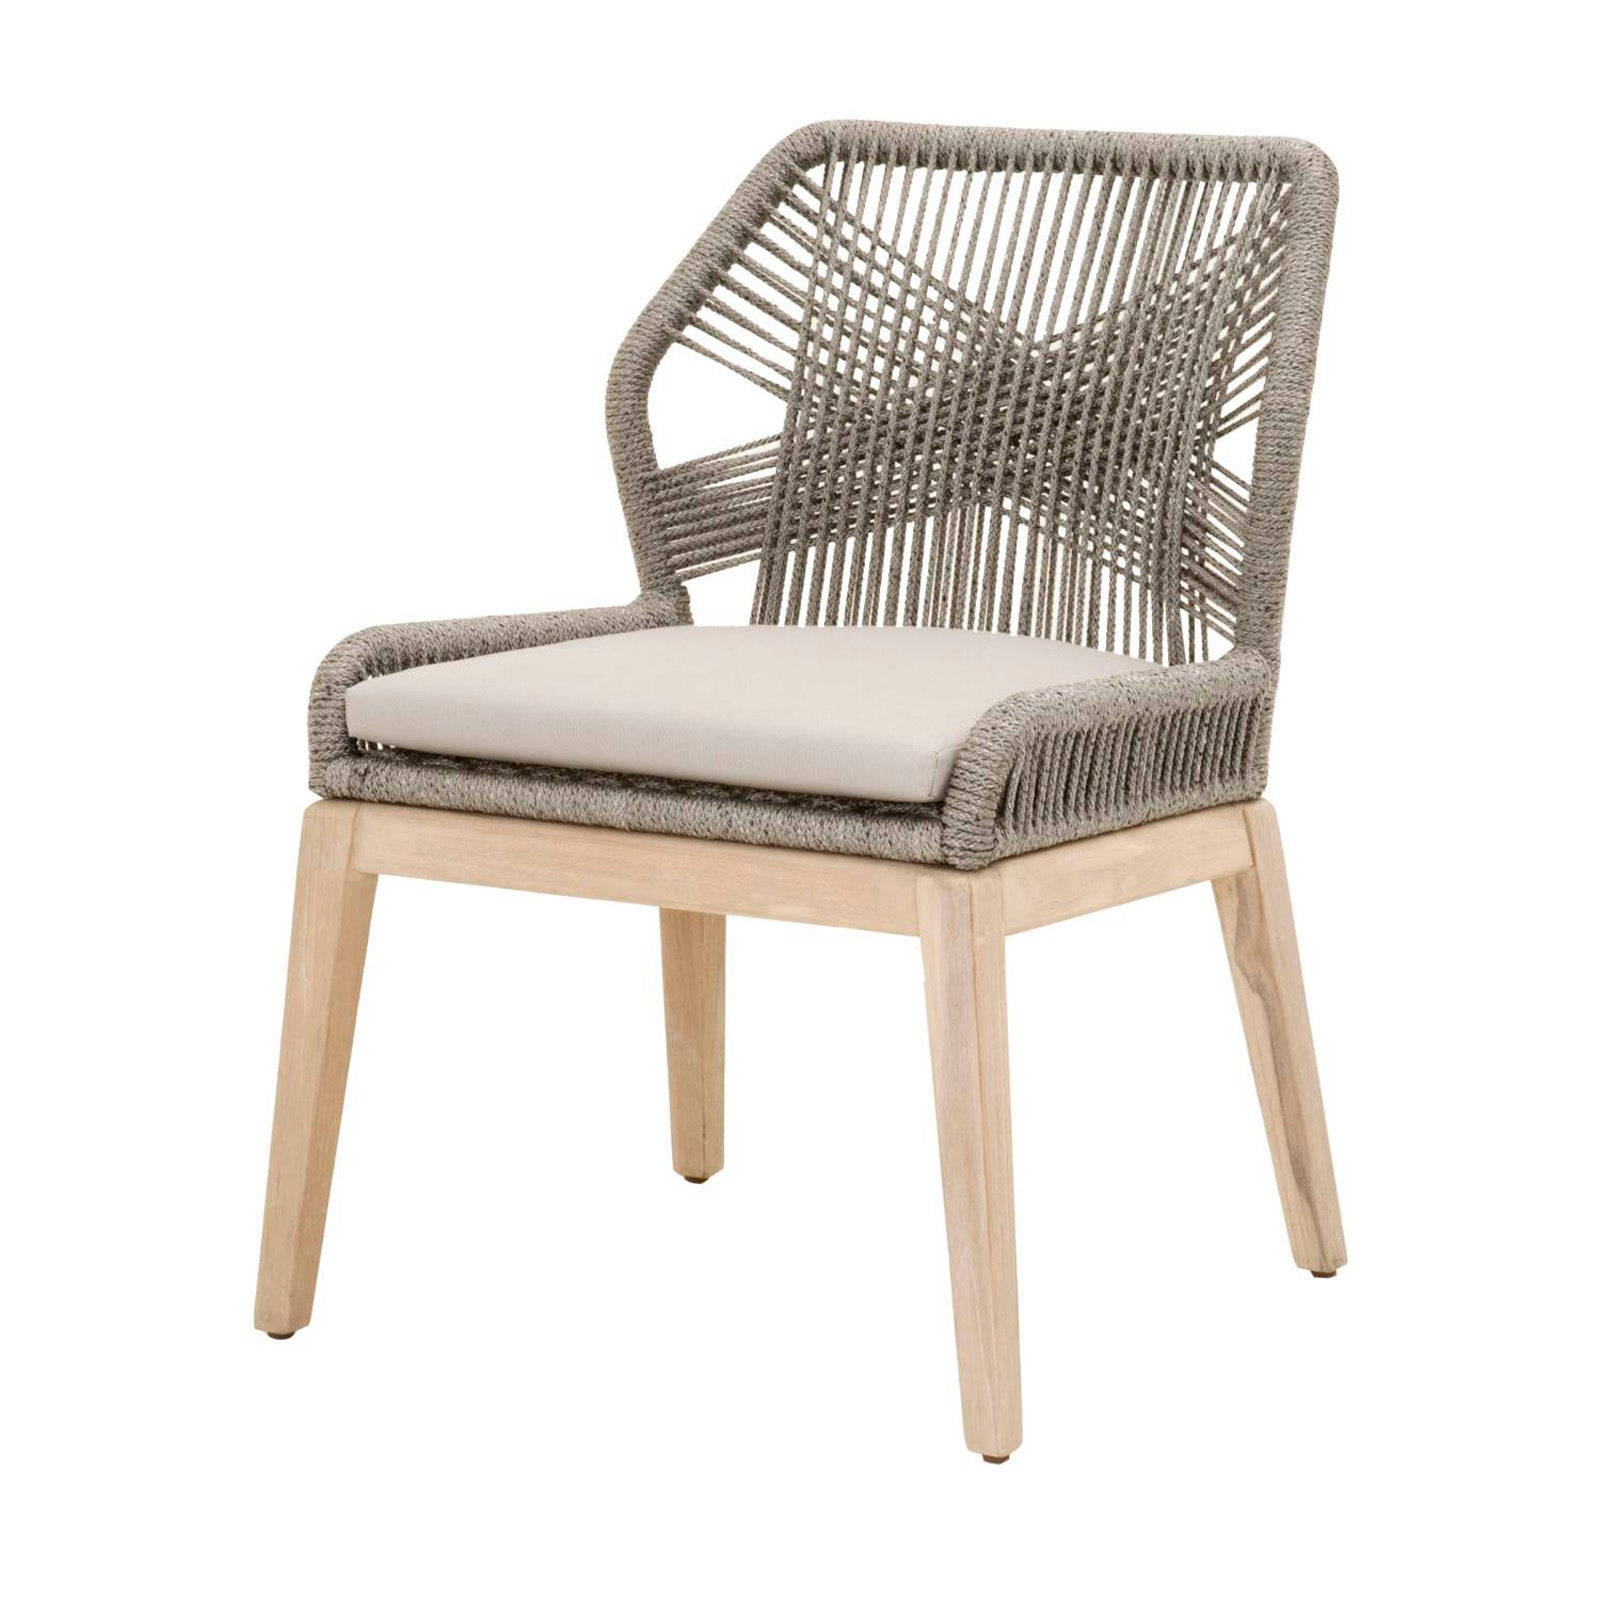 18e2d0bd15f0 ... Loom Outdoor Dining Chair (Set of 2) Platinum Rope, Smoke Gray Seat, ...